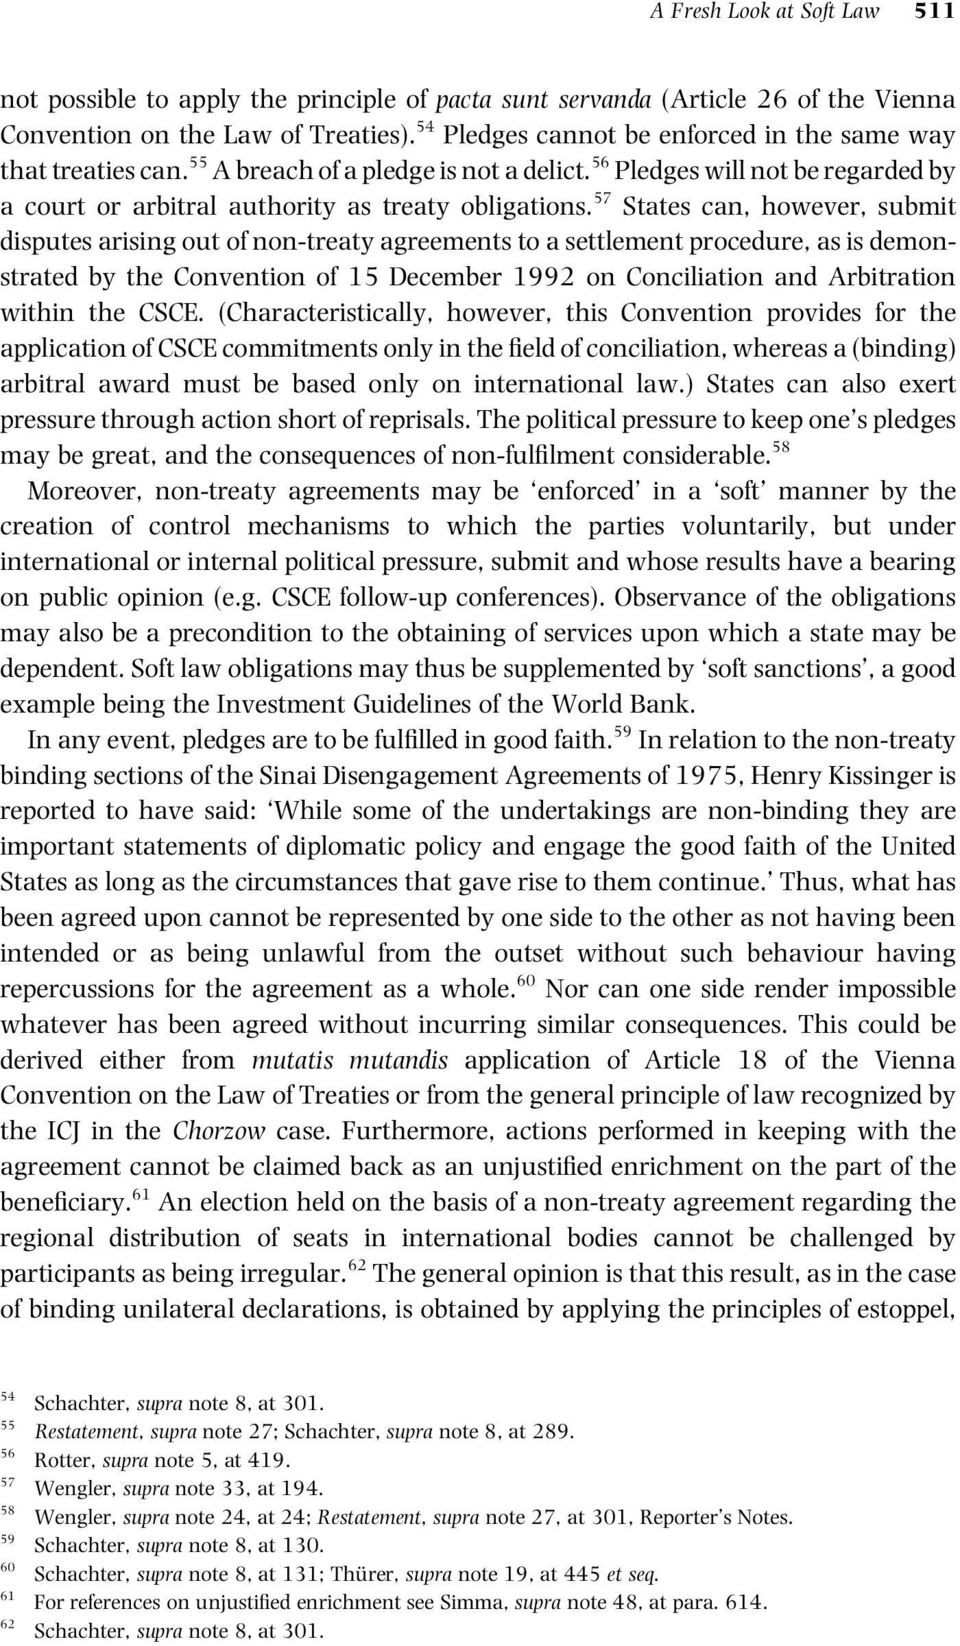 57 States can, however, submit disputes arising out of non-treaty agreements to a settlement procedure, as is demonstrated by the Convention of 15 December 1992 on Conciliation and Arbitration within